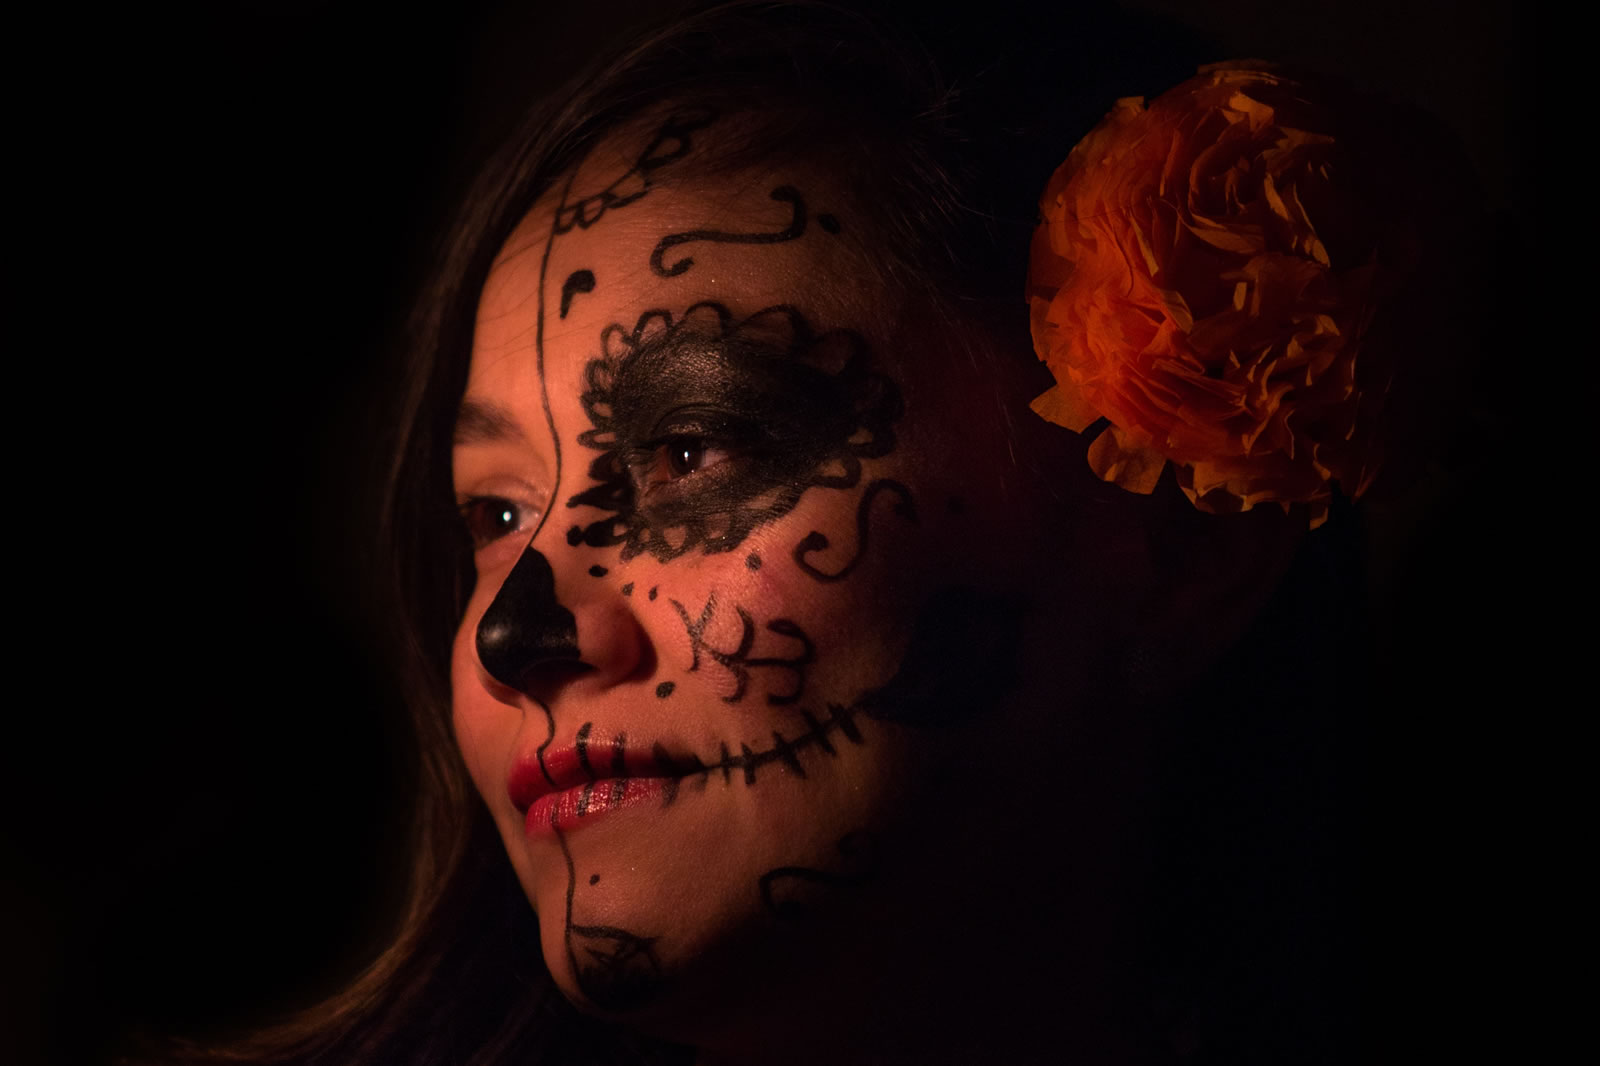 Woman with face painting